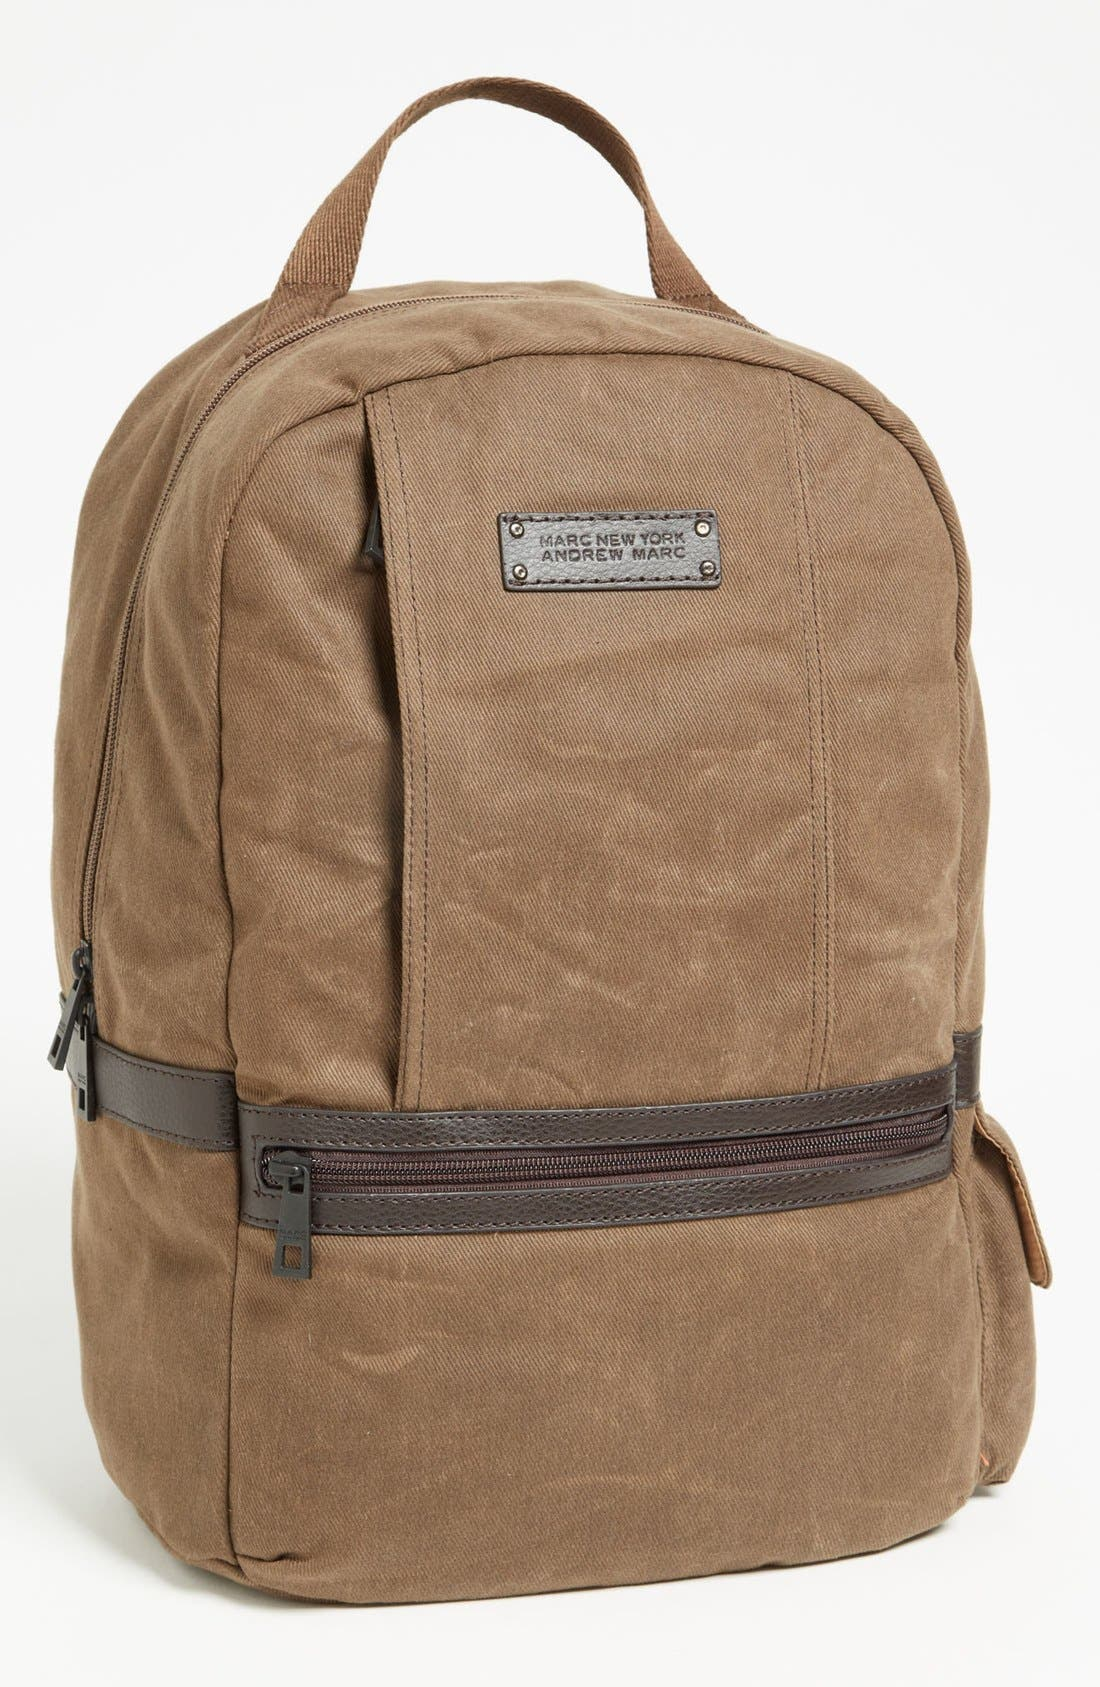 Alternate Image 1 Selected - Andrew Marc 'Essex' Twill Backpack